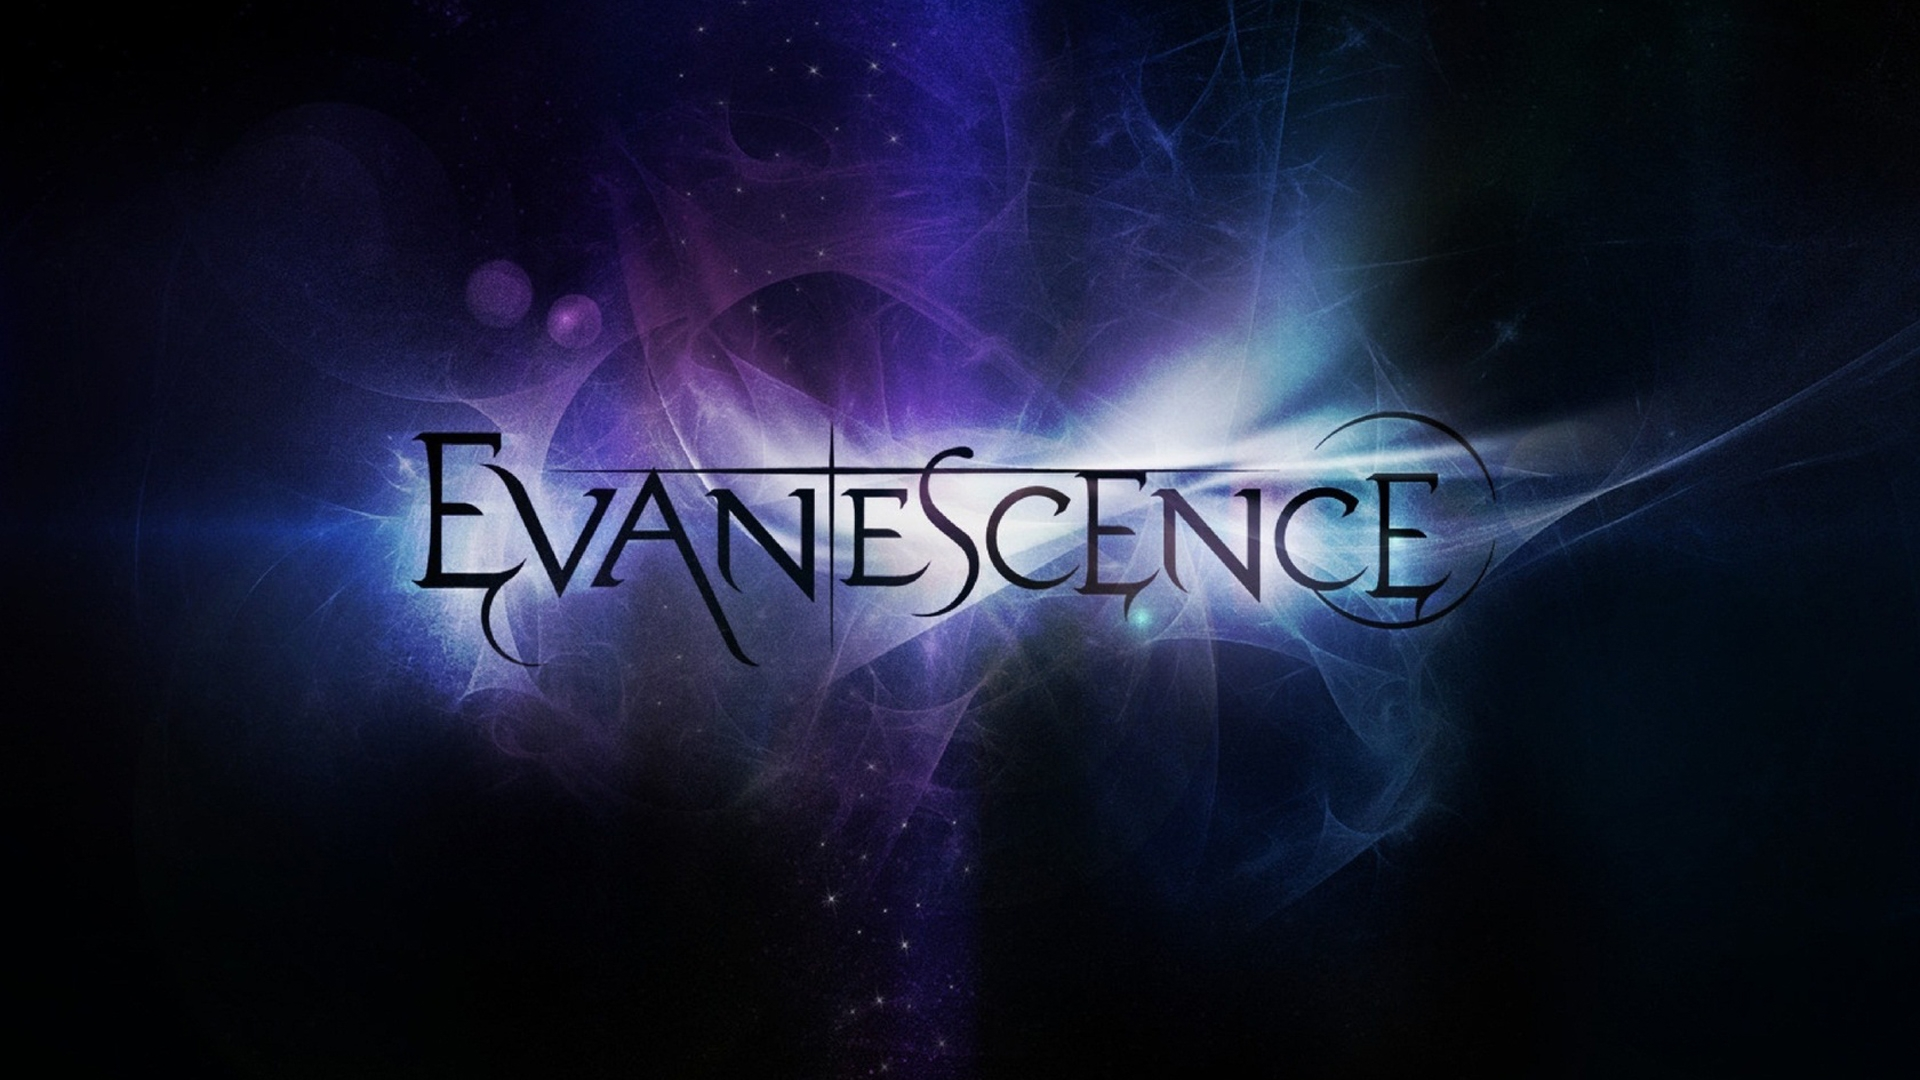 Evanescence Logo   High Definition Wallpapers   HD wallpapers 1920x1080